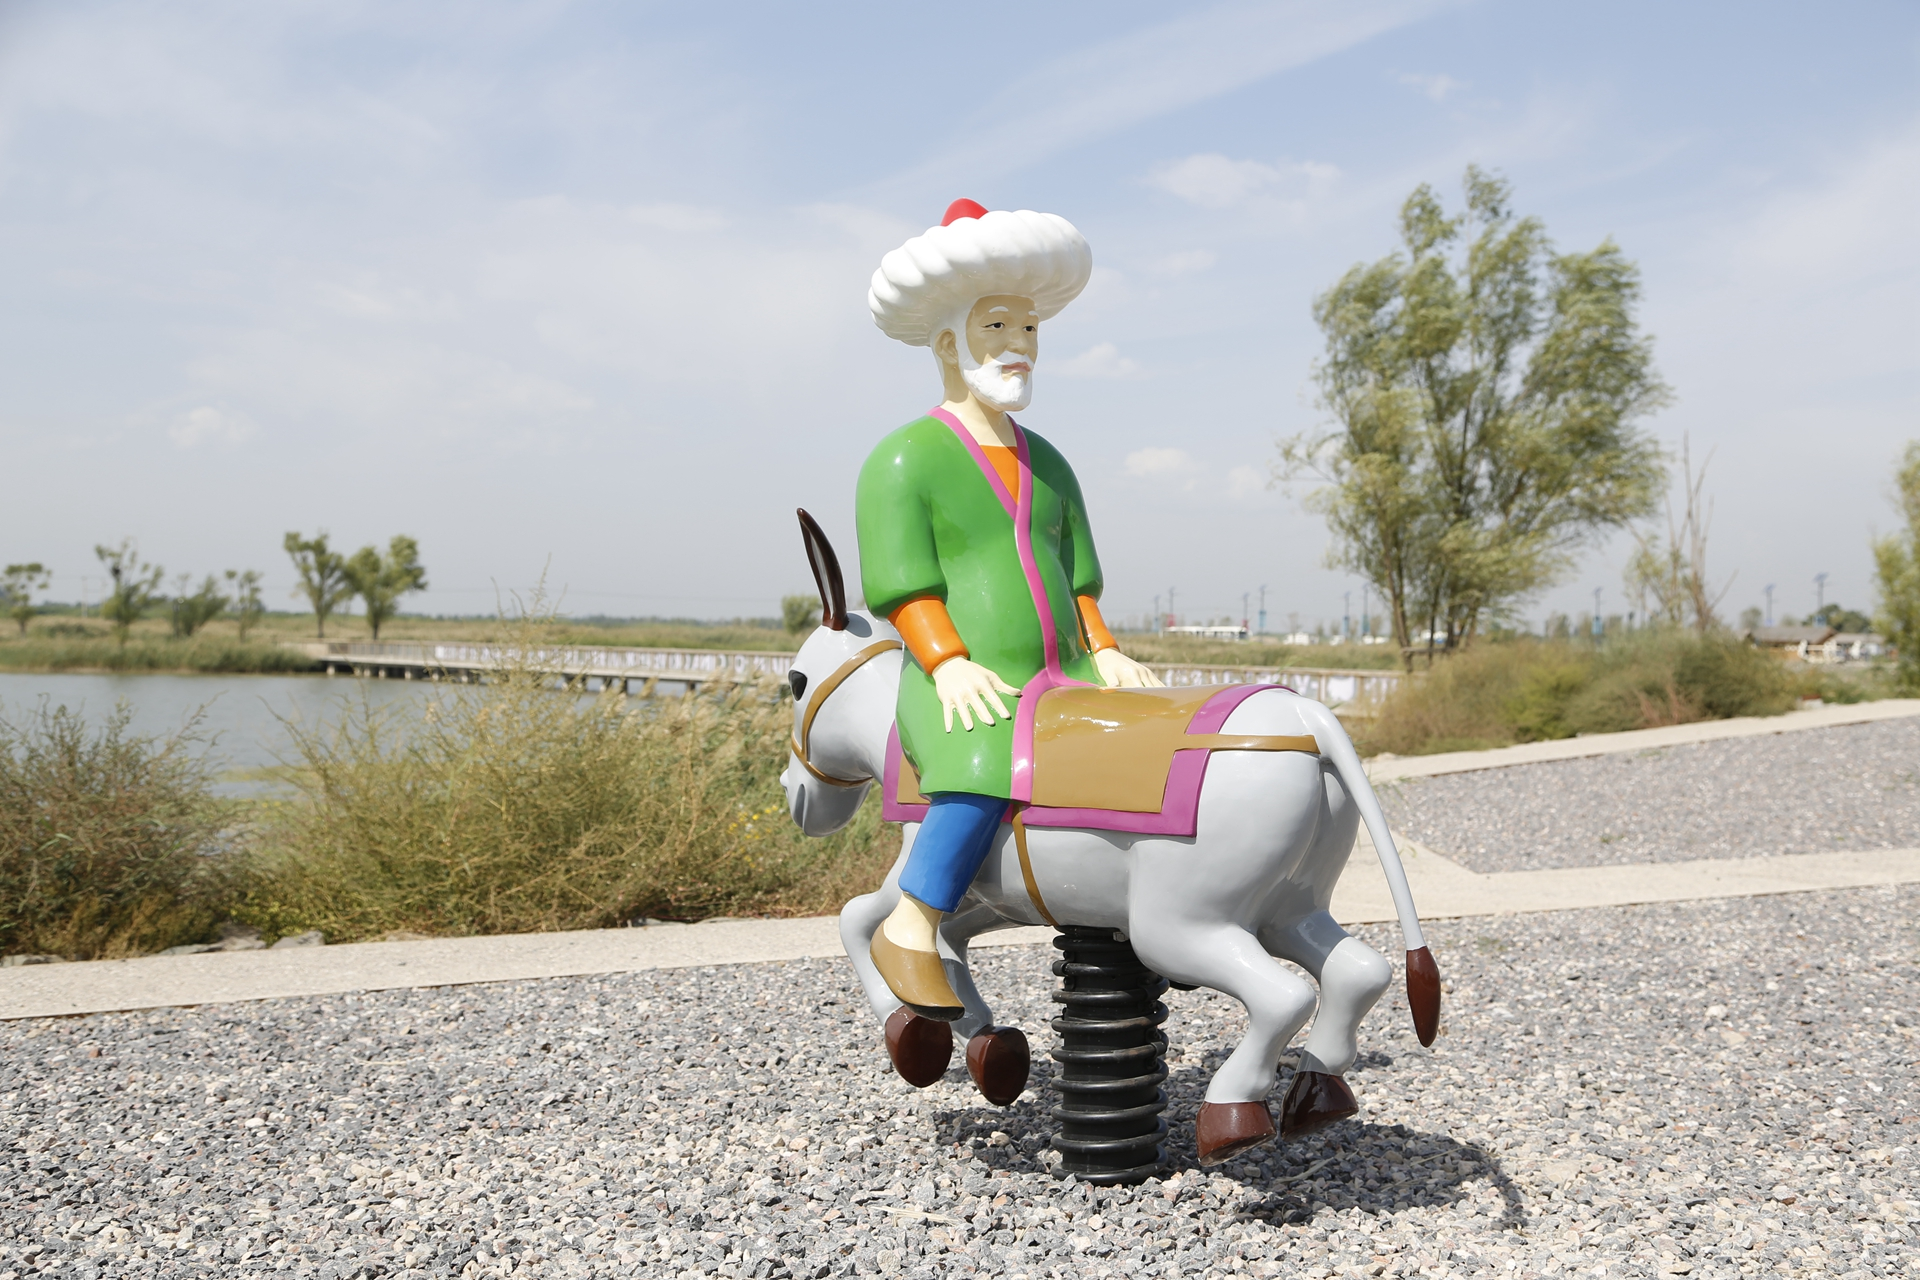 A sculpture by artist duo Slavs and Tatars resembling a children's playground's spring rider of an old man riding a donkey backwards